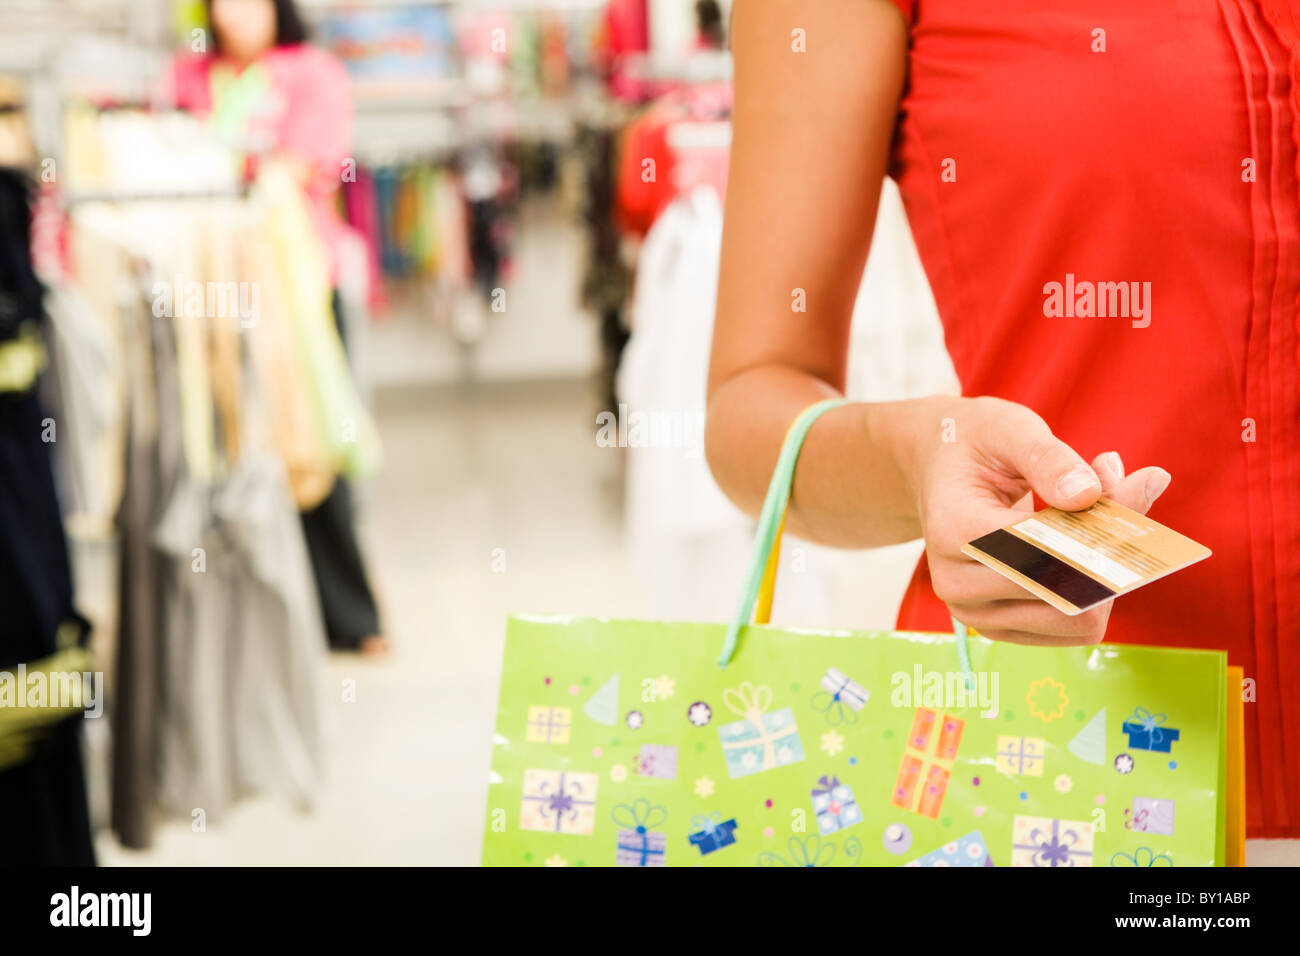 Close-up of woman's hand holding plastic card while going shopping in the mall - Stock Image